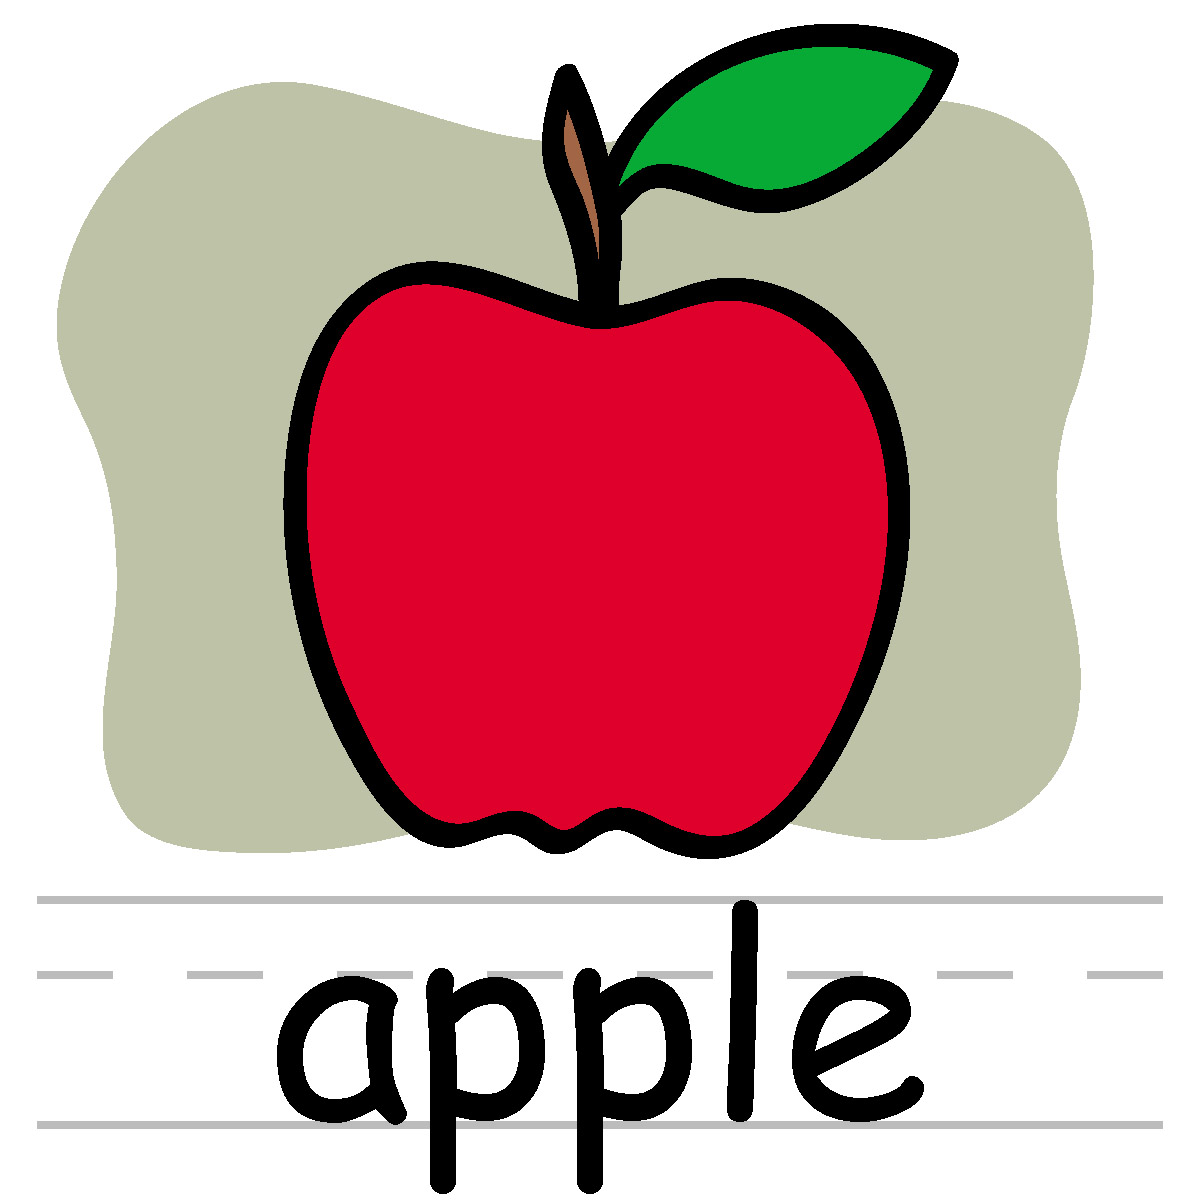 Apples clipart clip art, Apples clip art Transparent FREE.